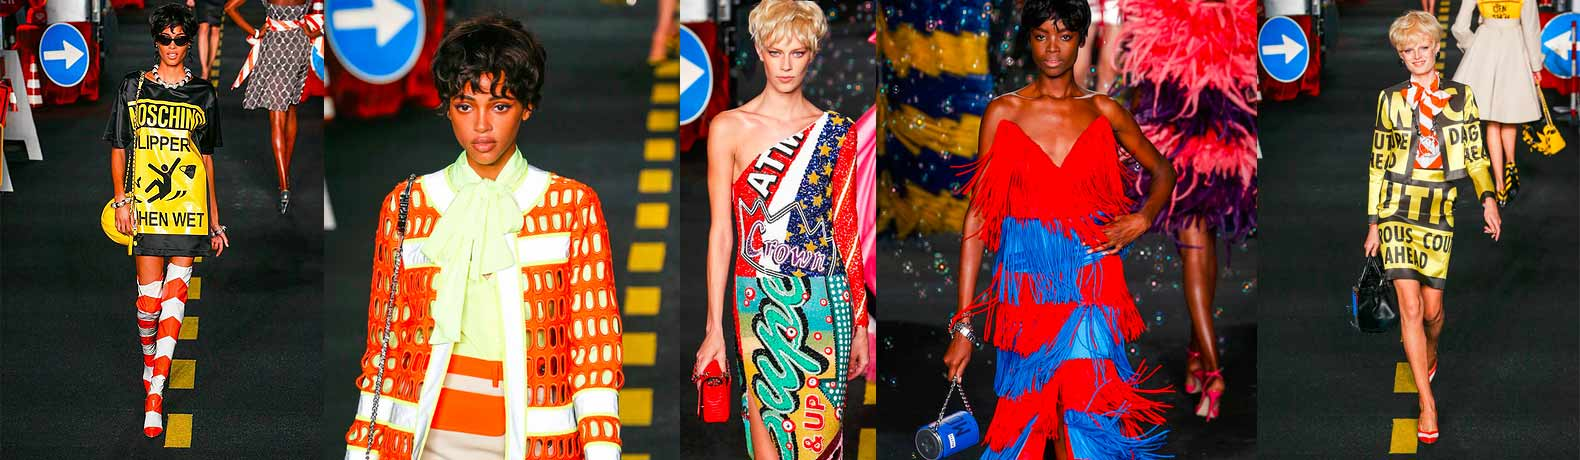 moschino-spring-summer-2016-rtw-construction-inspired-outfits